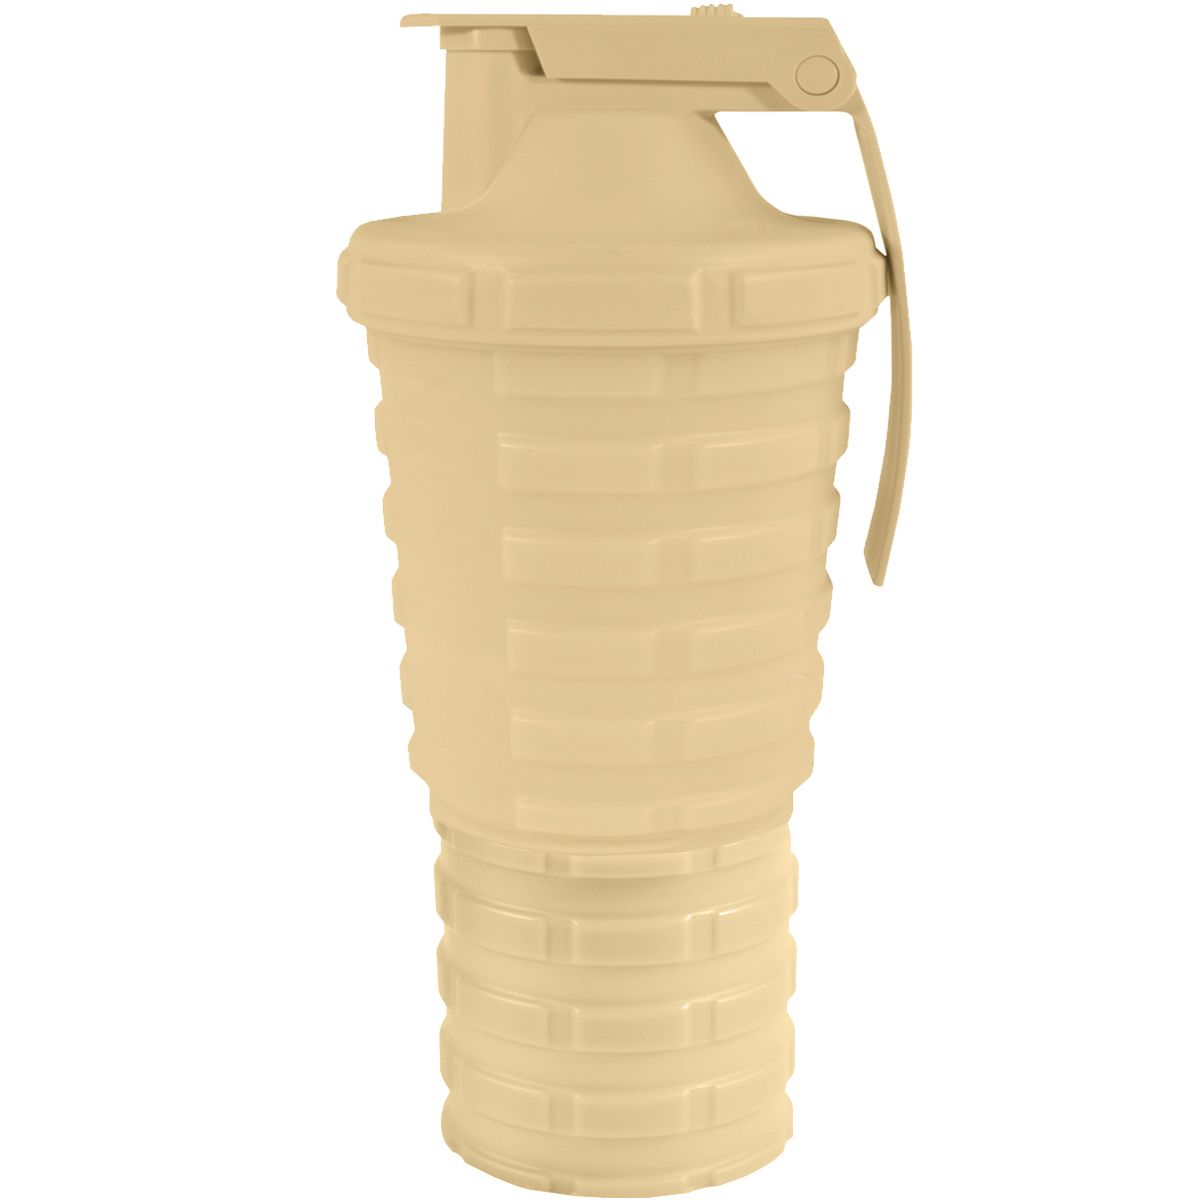 thumbnail 5 - Grenade-20-oz-Shaker-Blender-Mixer-Bottle-with-600ml-Protein-Cup-Compartment